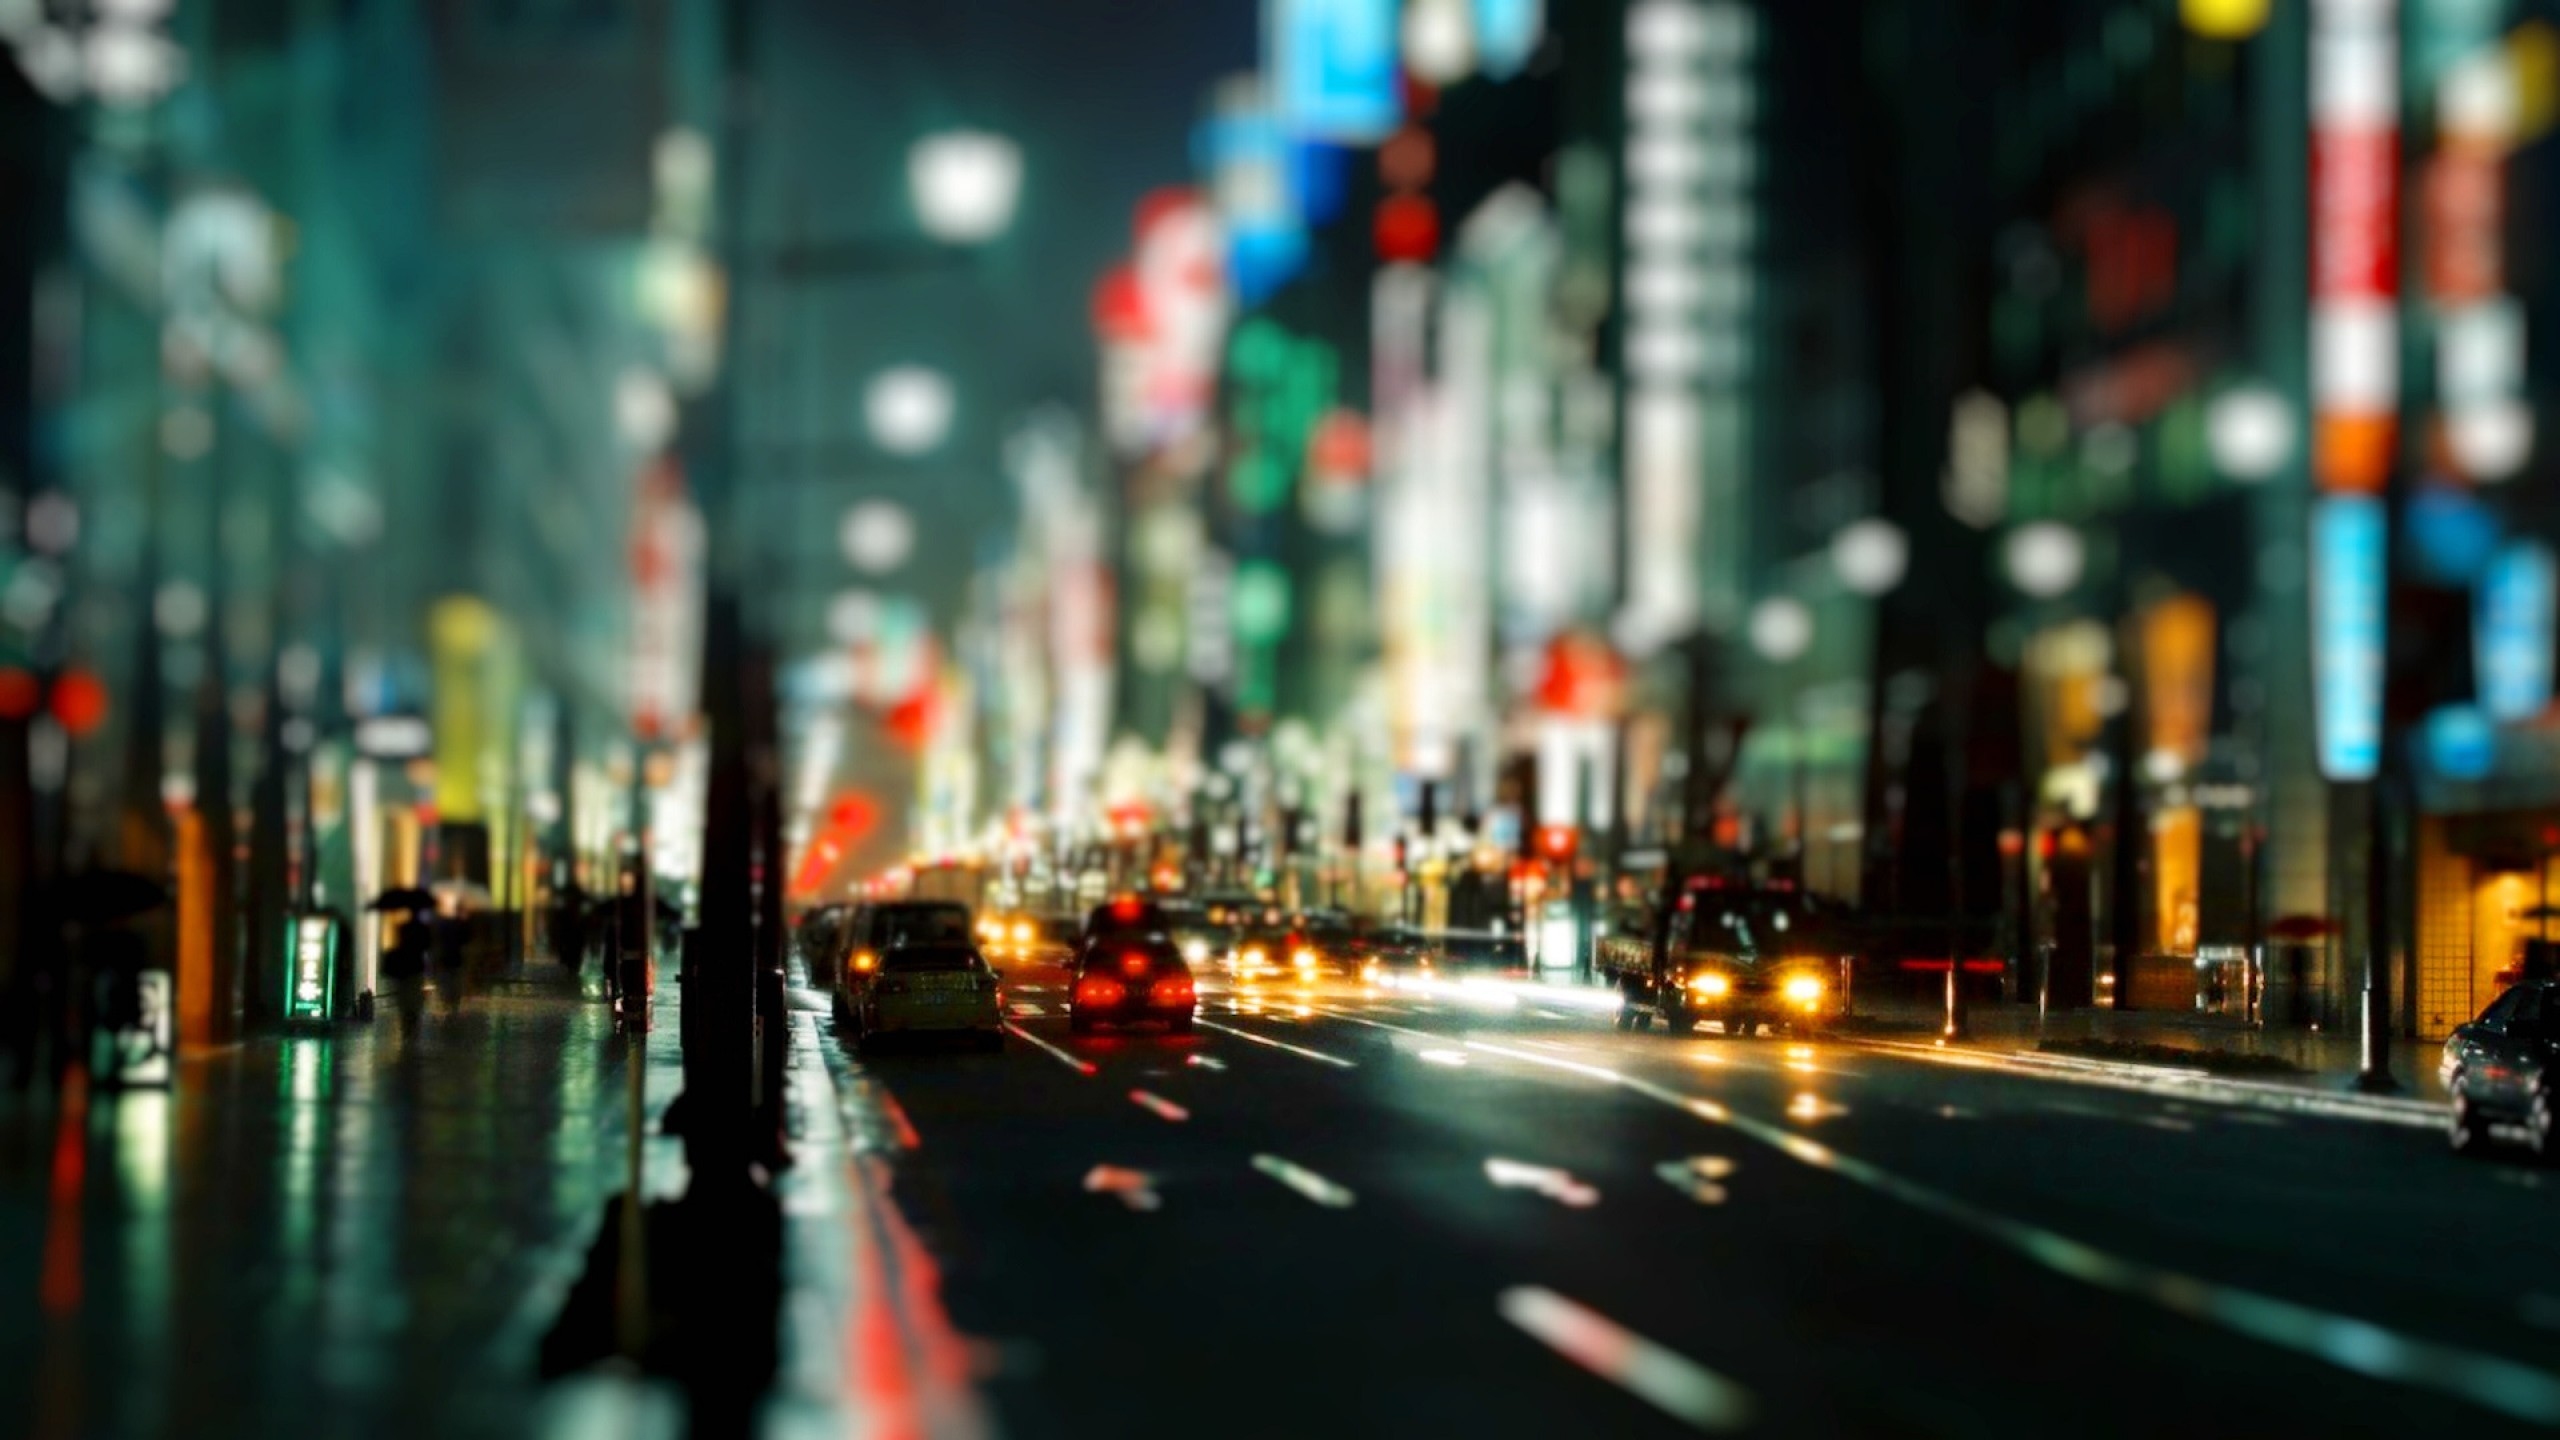 City Street Night Background Wallpaper